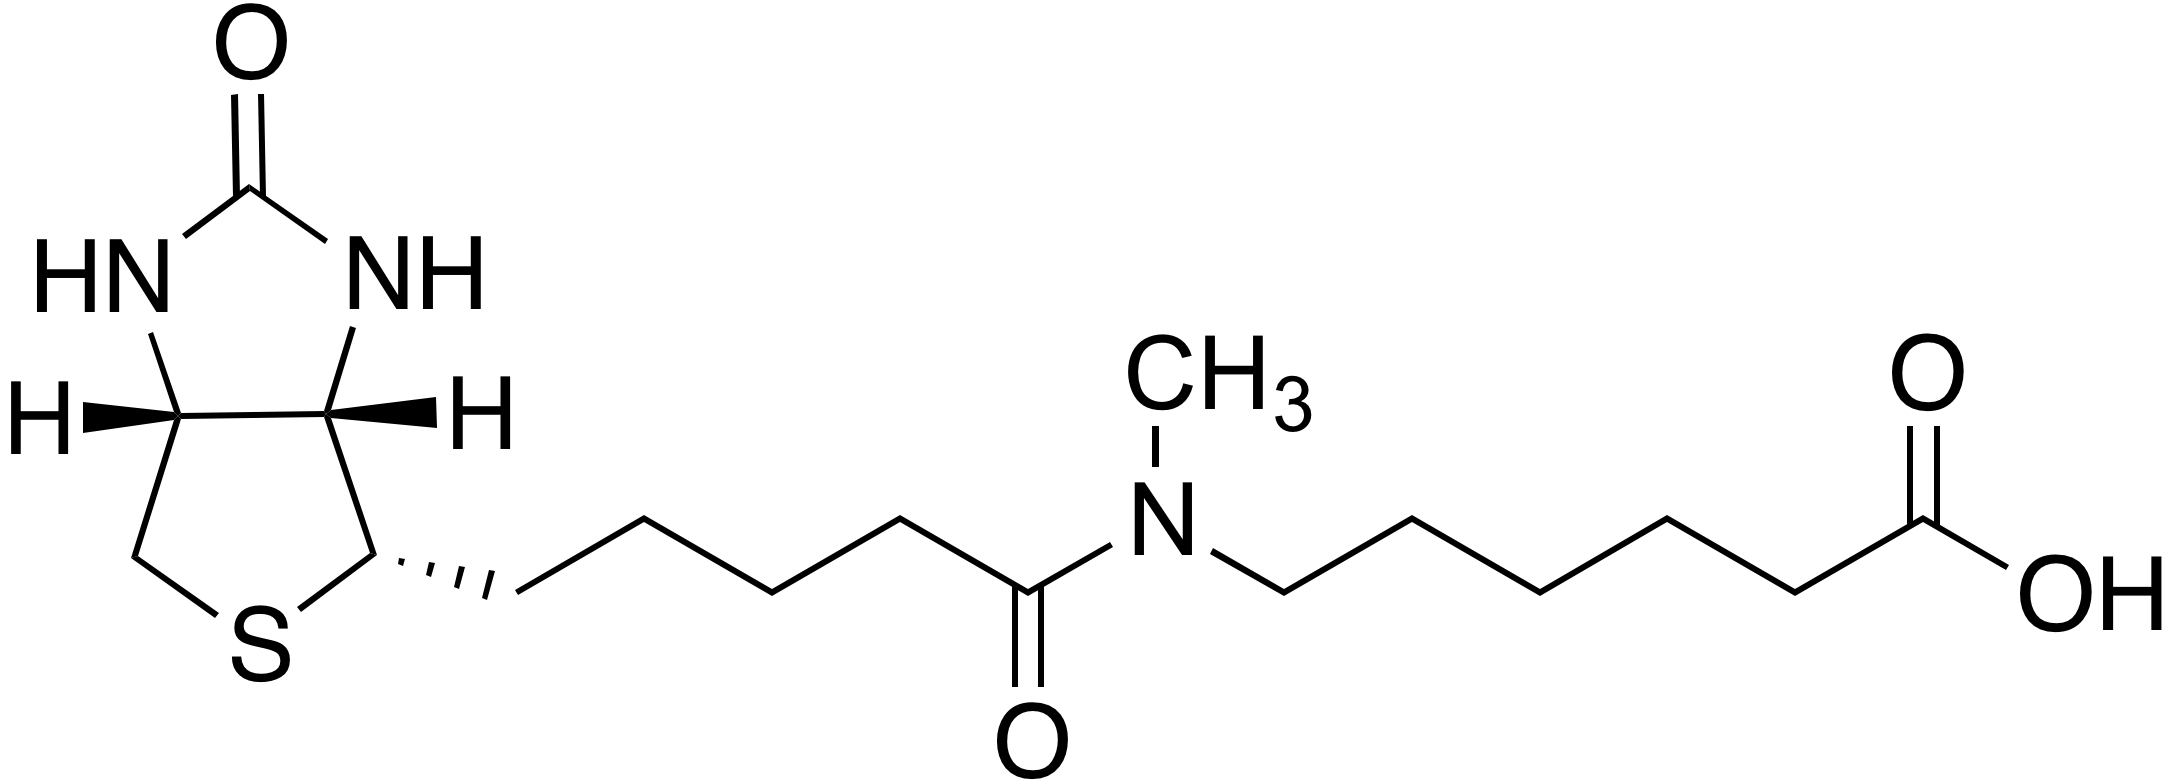 (N-Methyl-N-biotinyl)-6-aminohexanoic acid